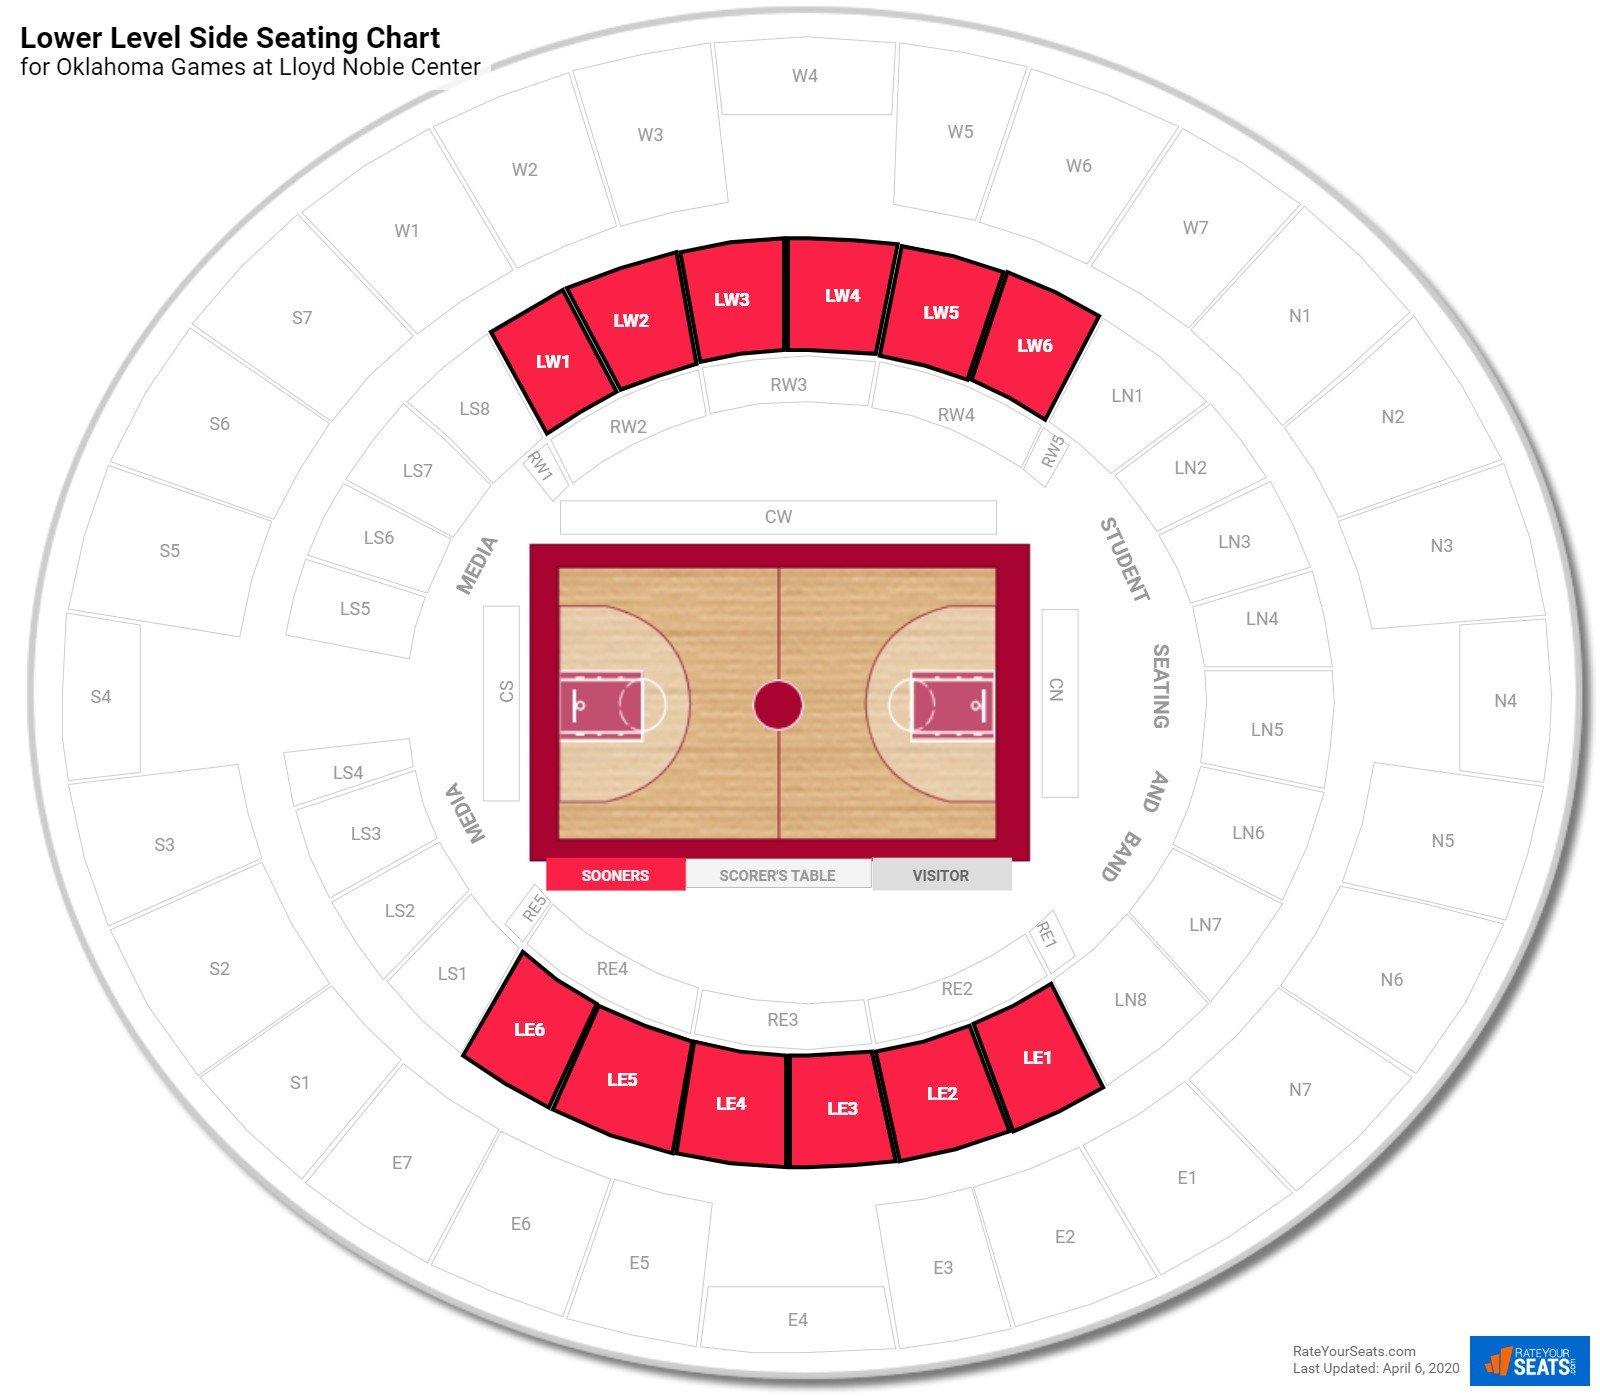 Lloyd Noble Center Lower Level Side seating chart